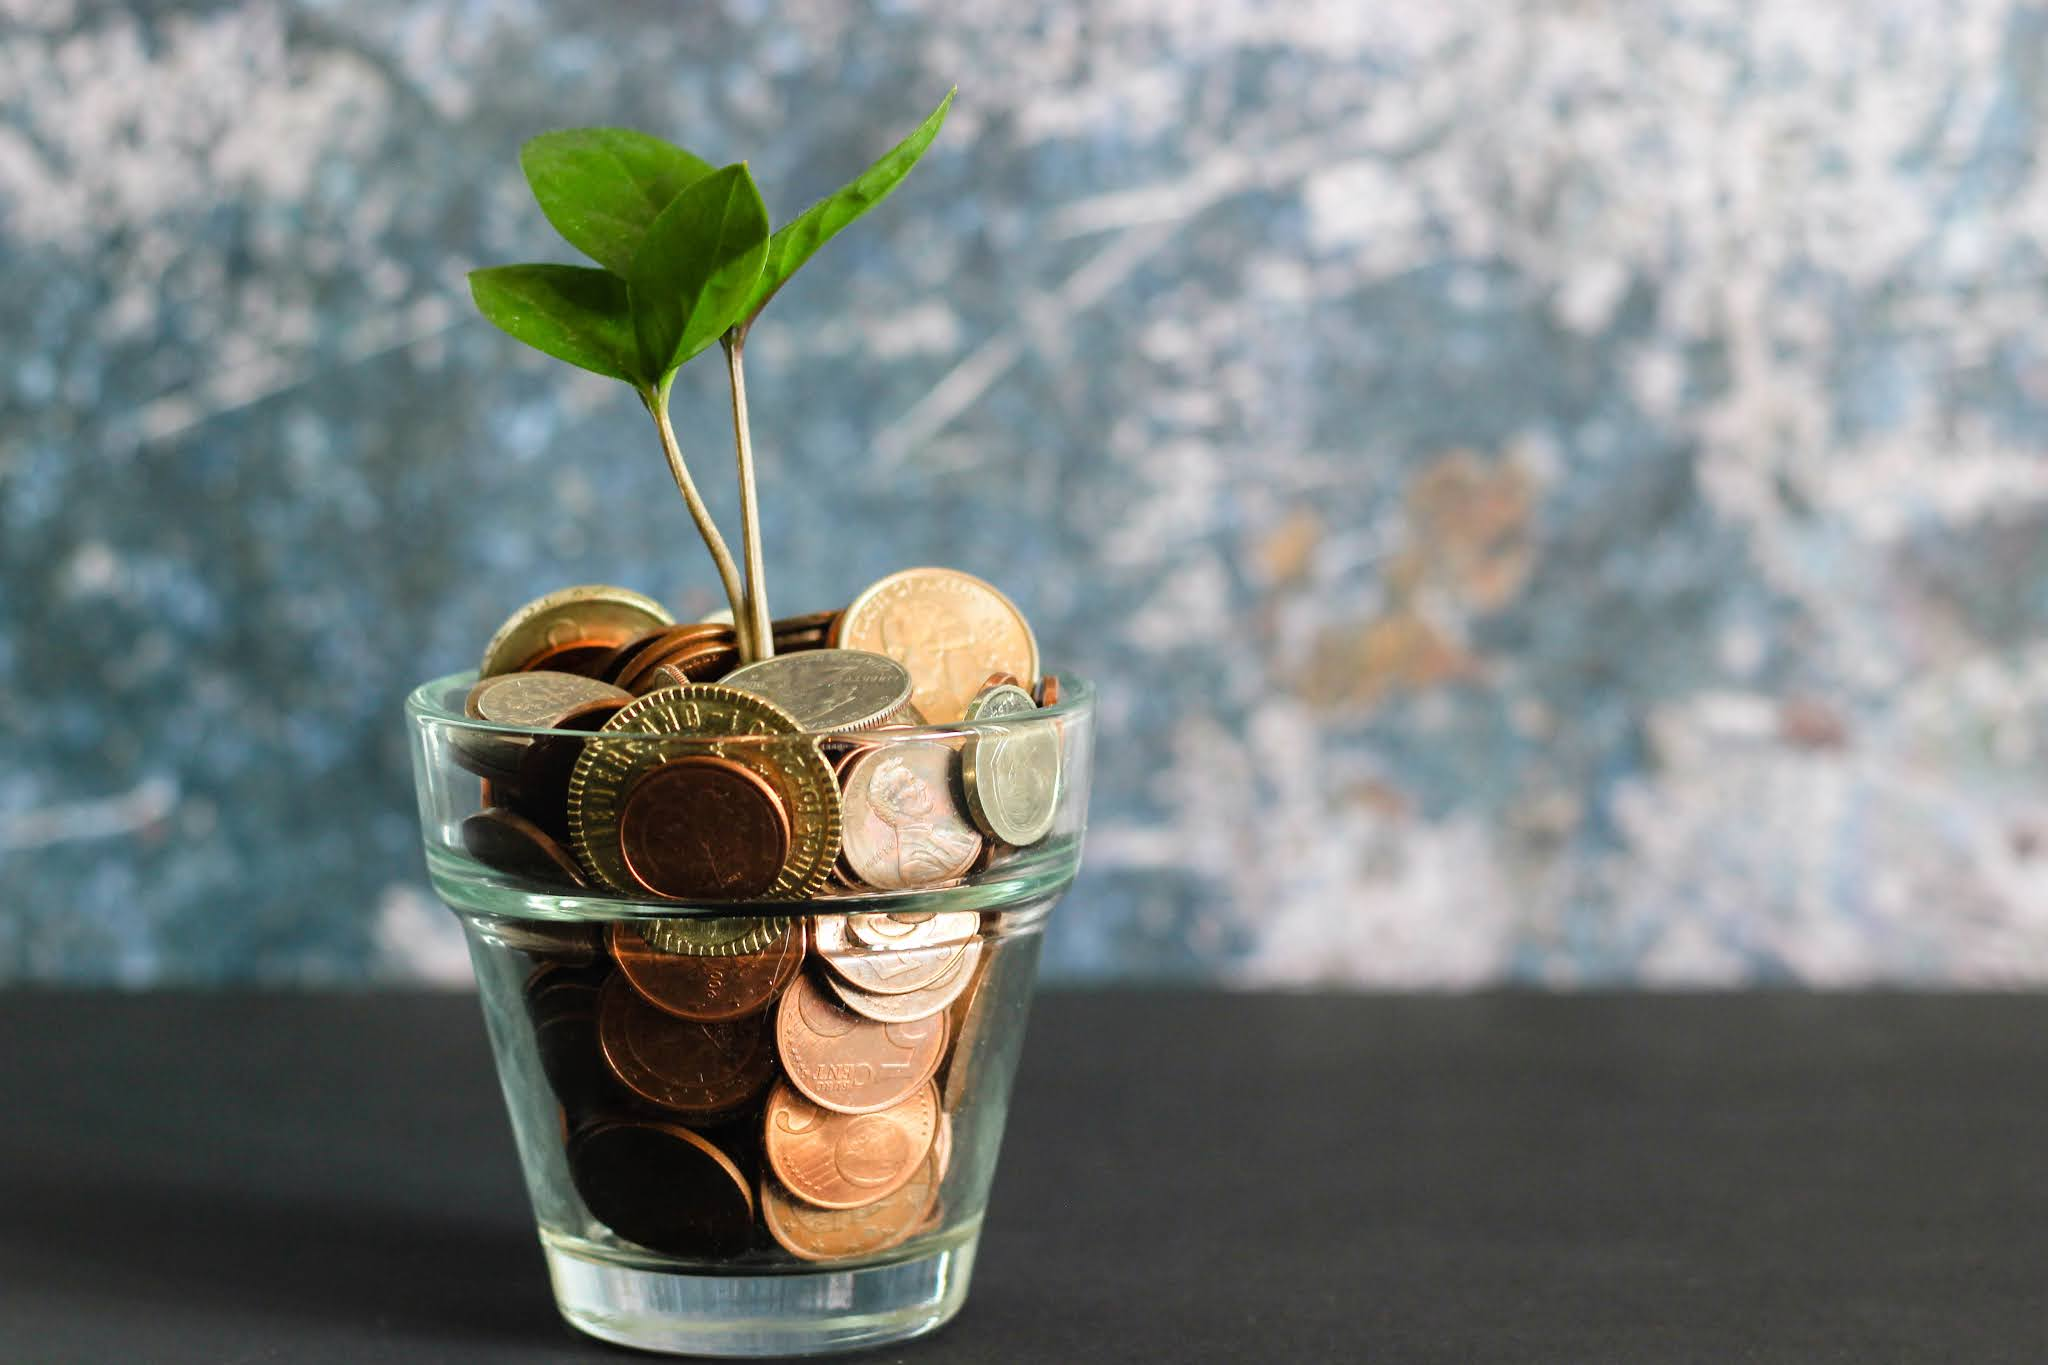 WHY IS FINANCIAL IQ IMPORTANT?